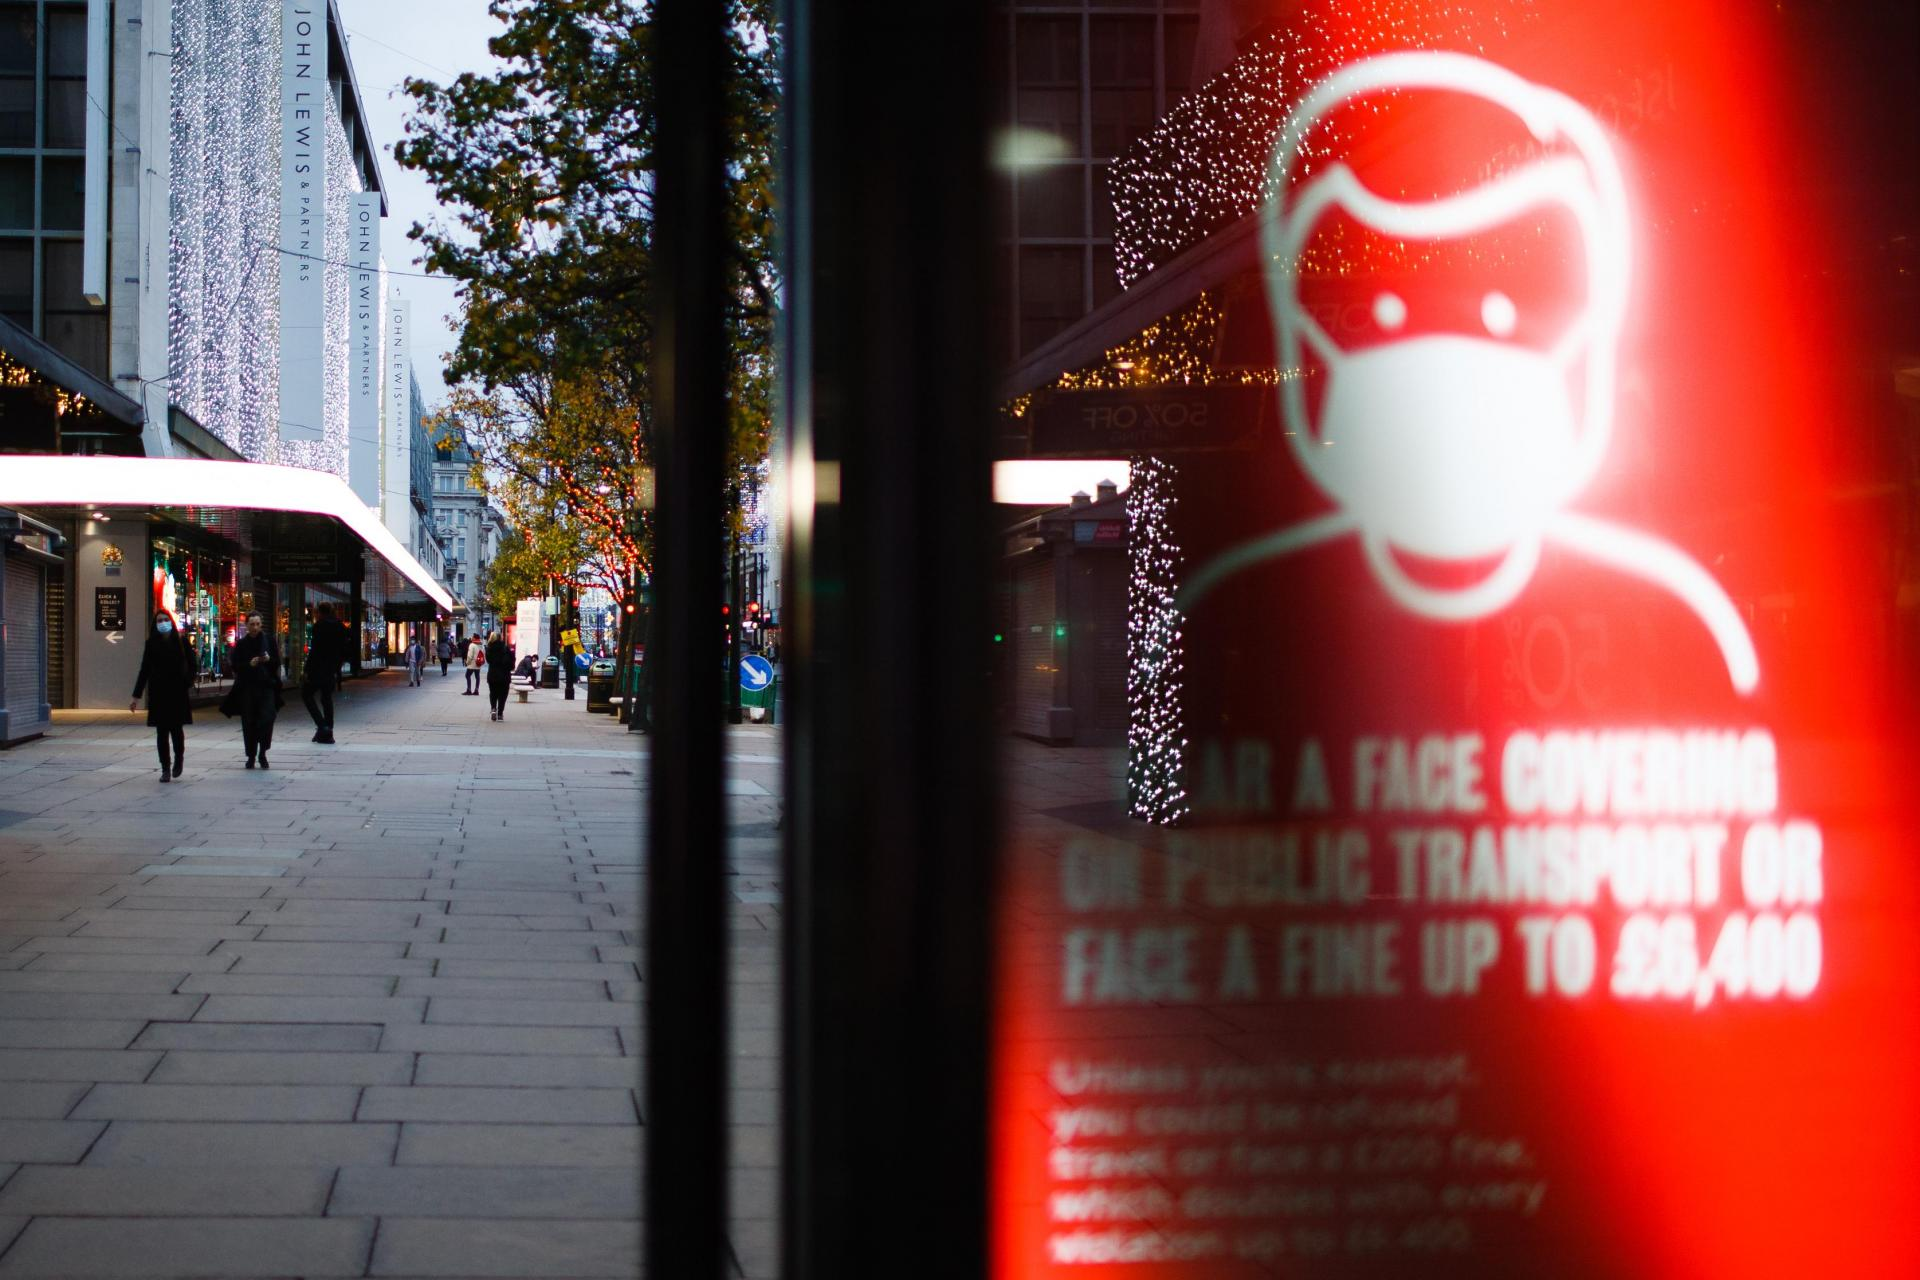 A sign reminding public transport users to wear face coverings lights up the digital advertising screen of a bus stop on a quiet Oxford Street in London, England.